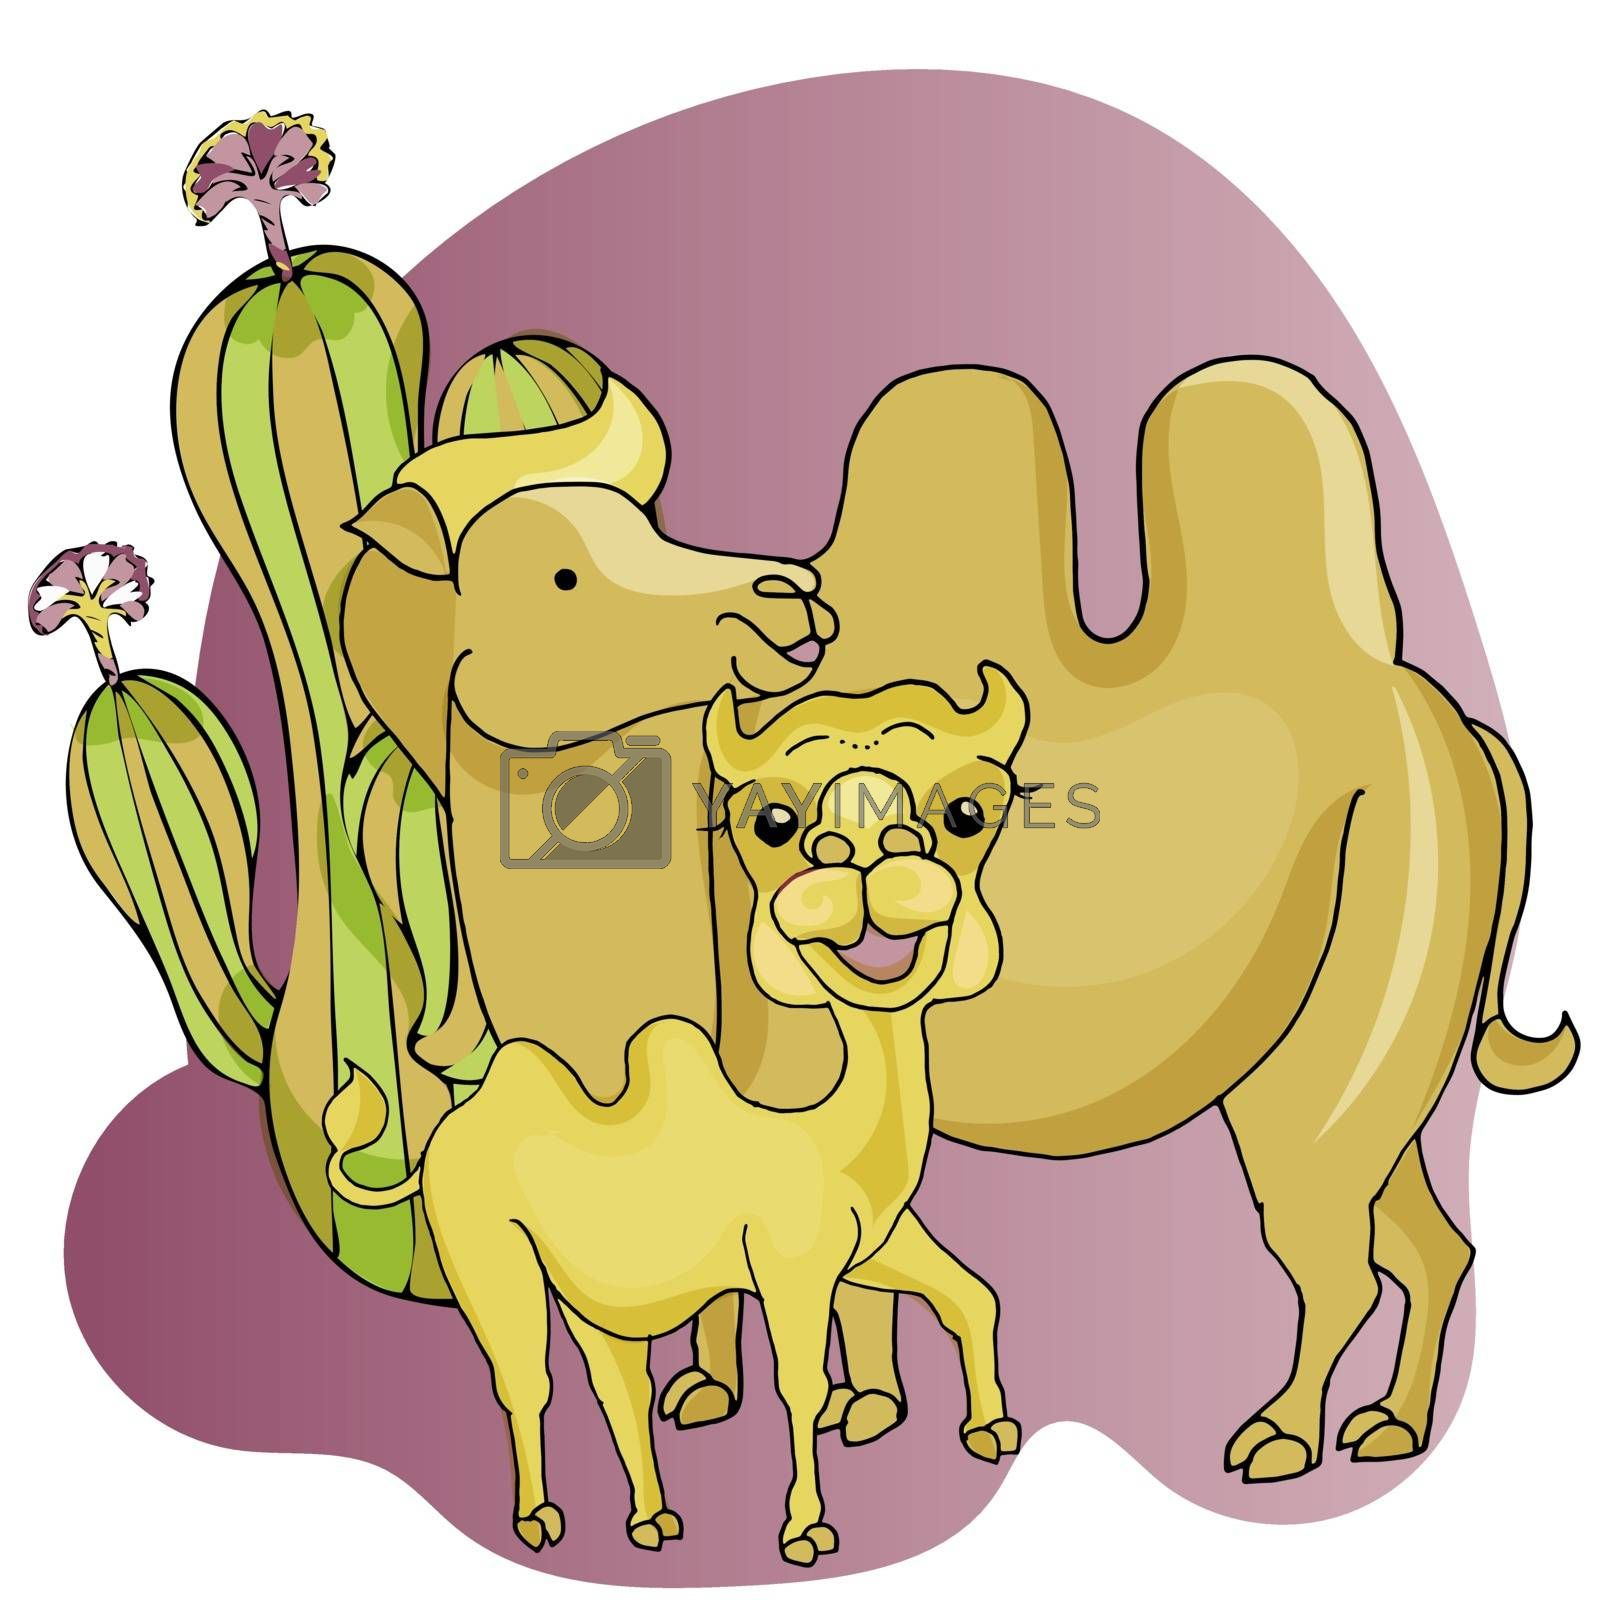 Two camel mom and baby camel in cartoon style.